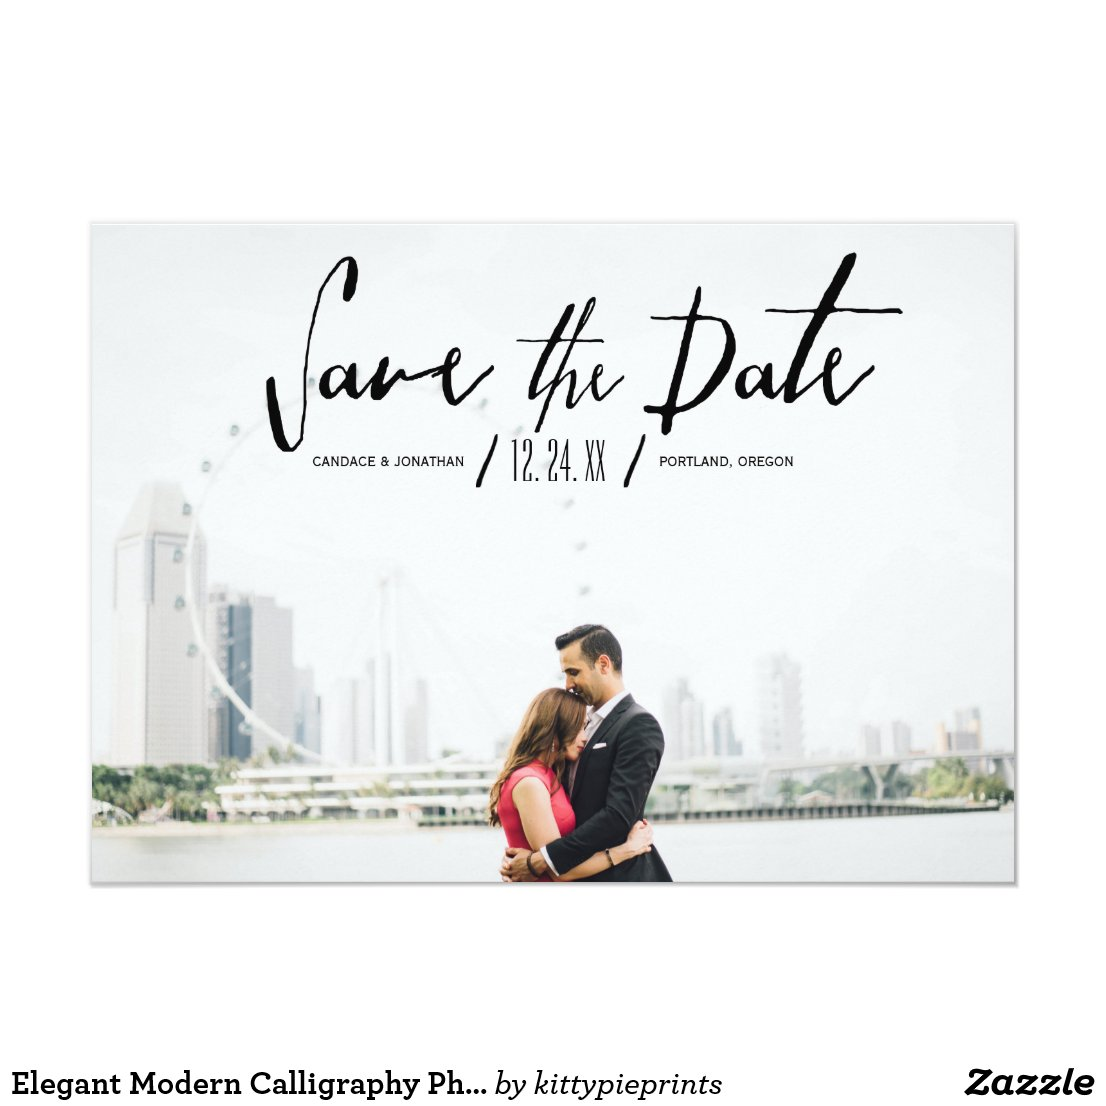 Elegant Modern Calligraphy Photo Save the Date